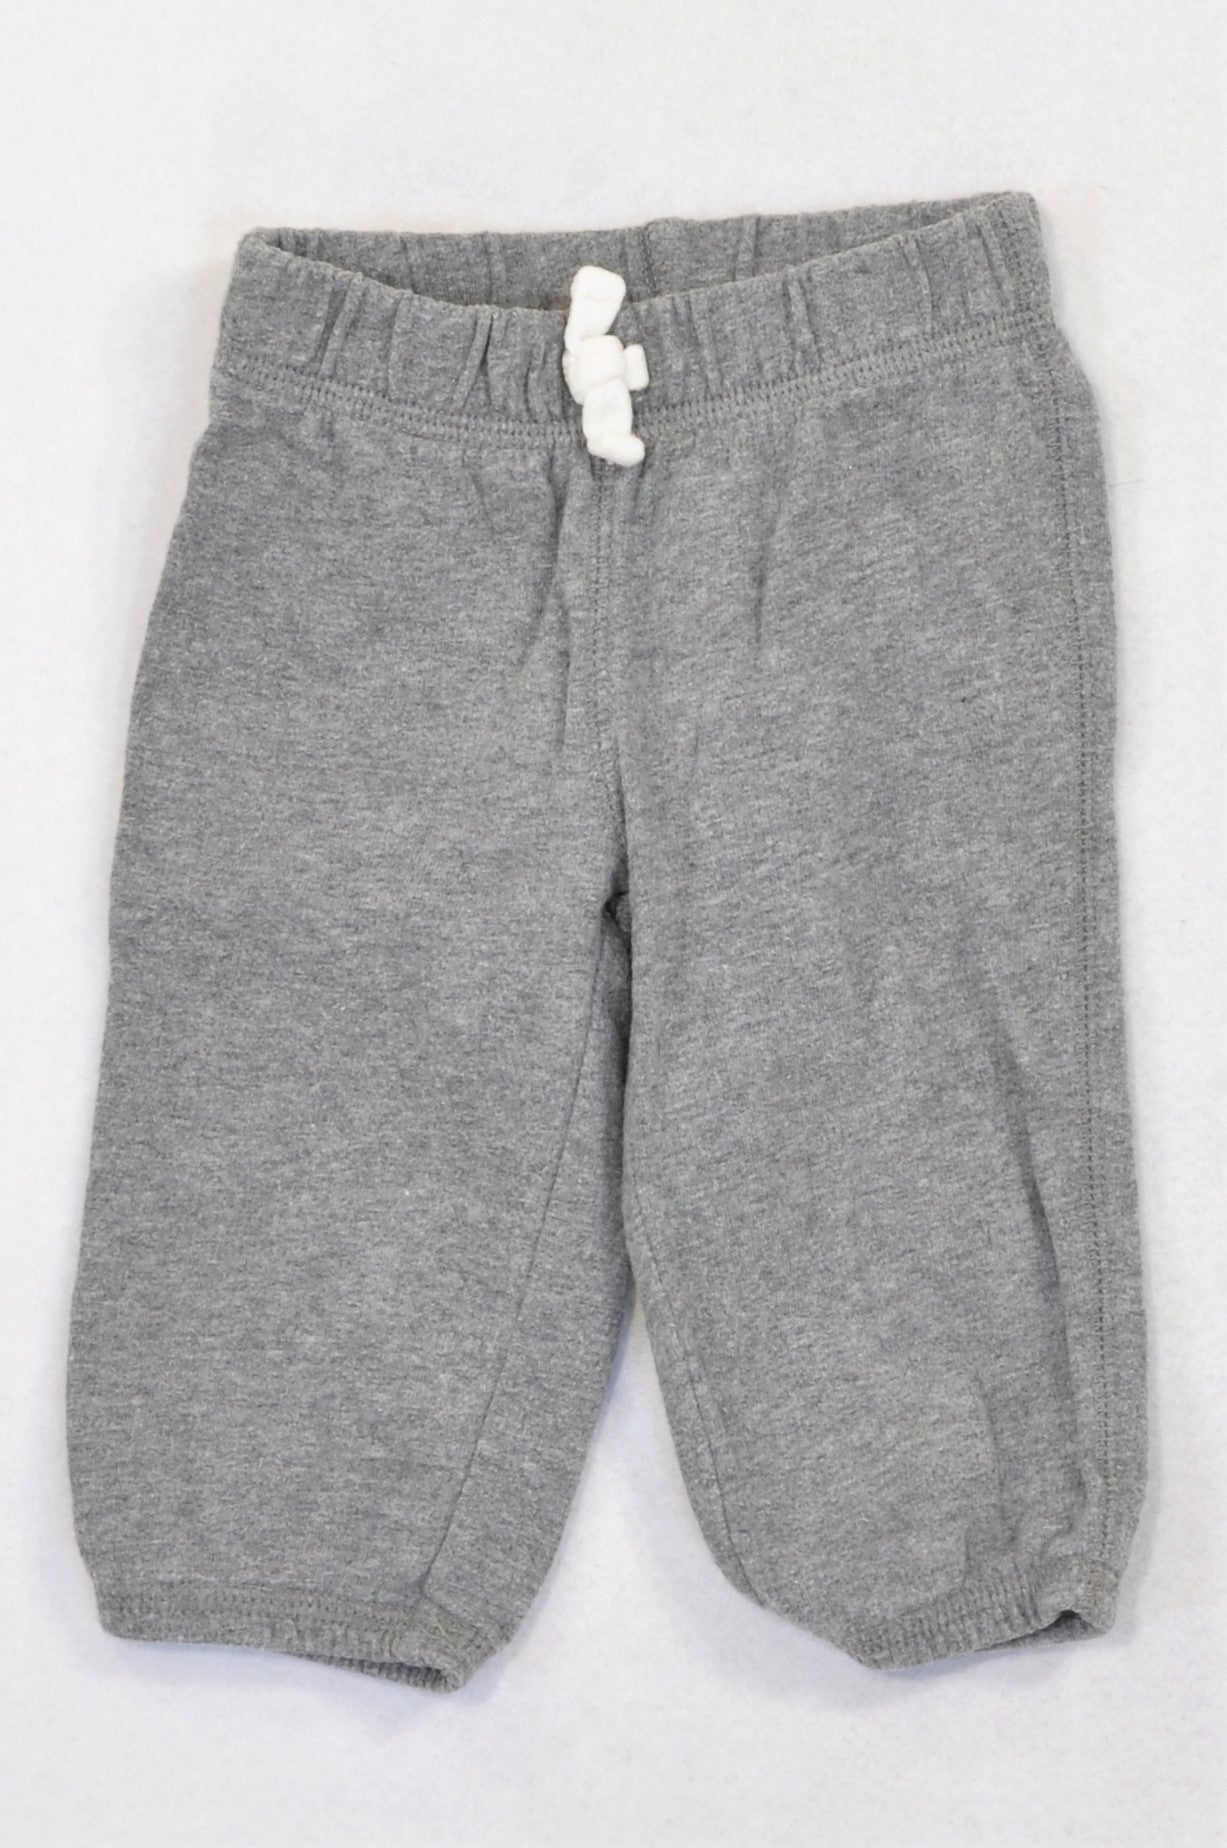 Carter's Heathered Grey Cuffed Track Pants Boys 3-6 months